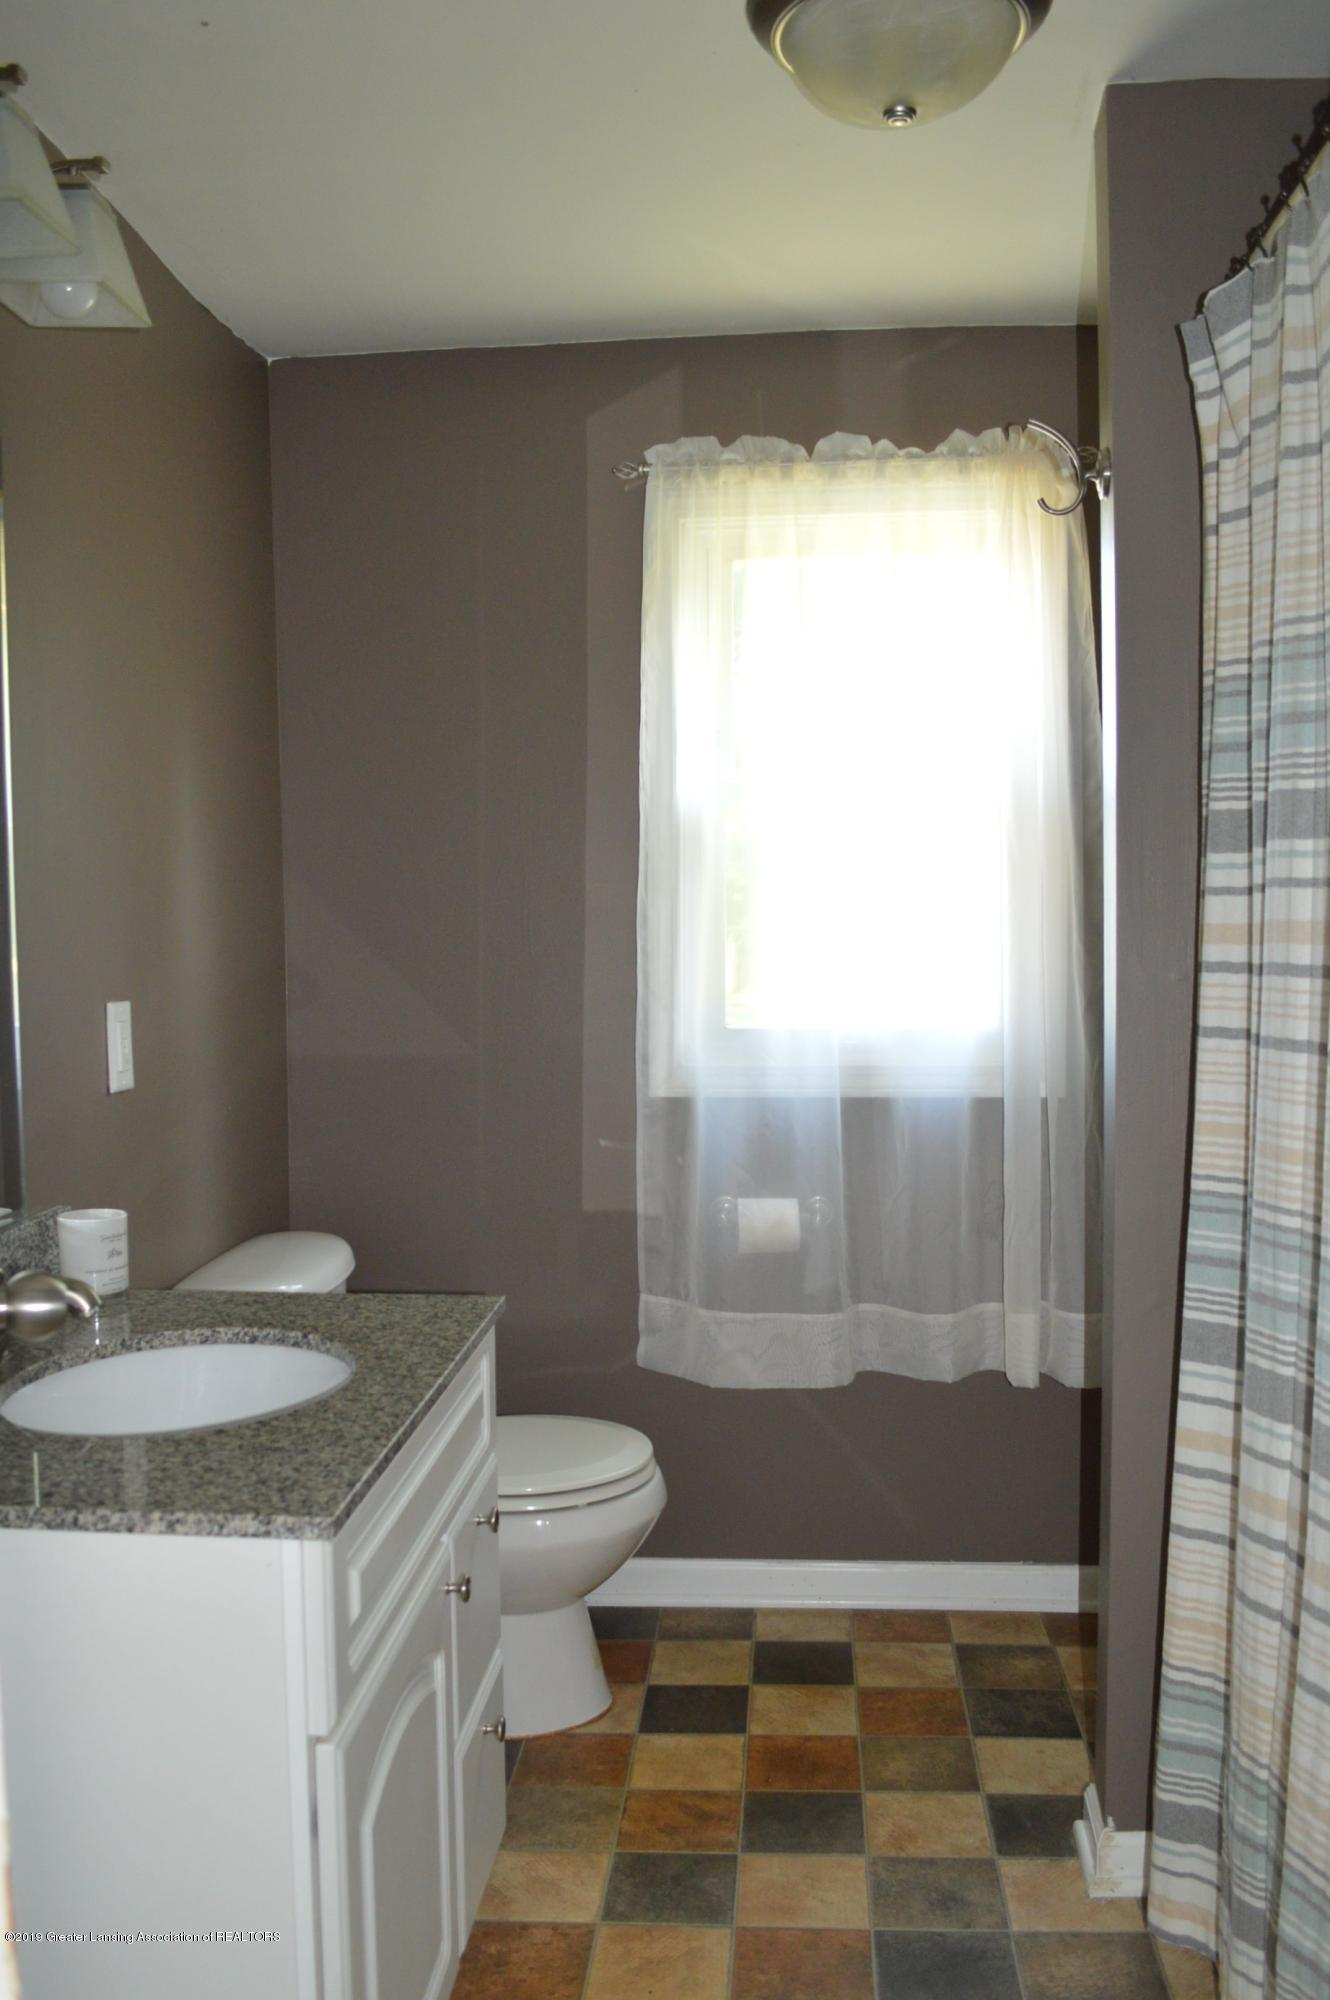 8275 E Clinton Trail - 10a - Bathroom - 14